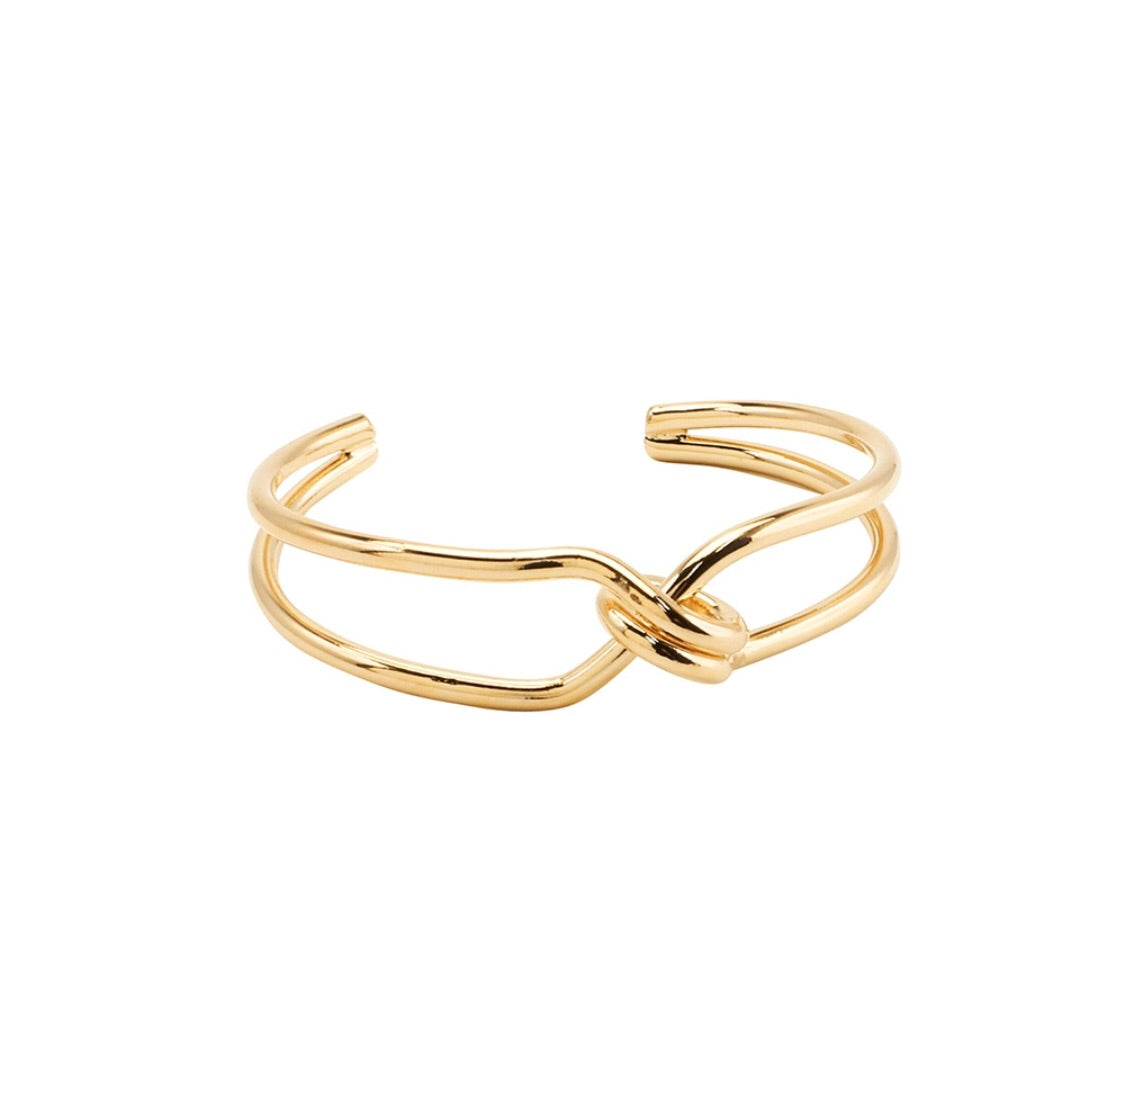 Jolie and Deen Twisted Loop Cuff